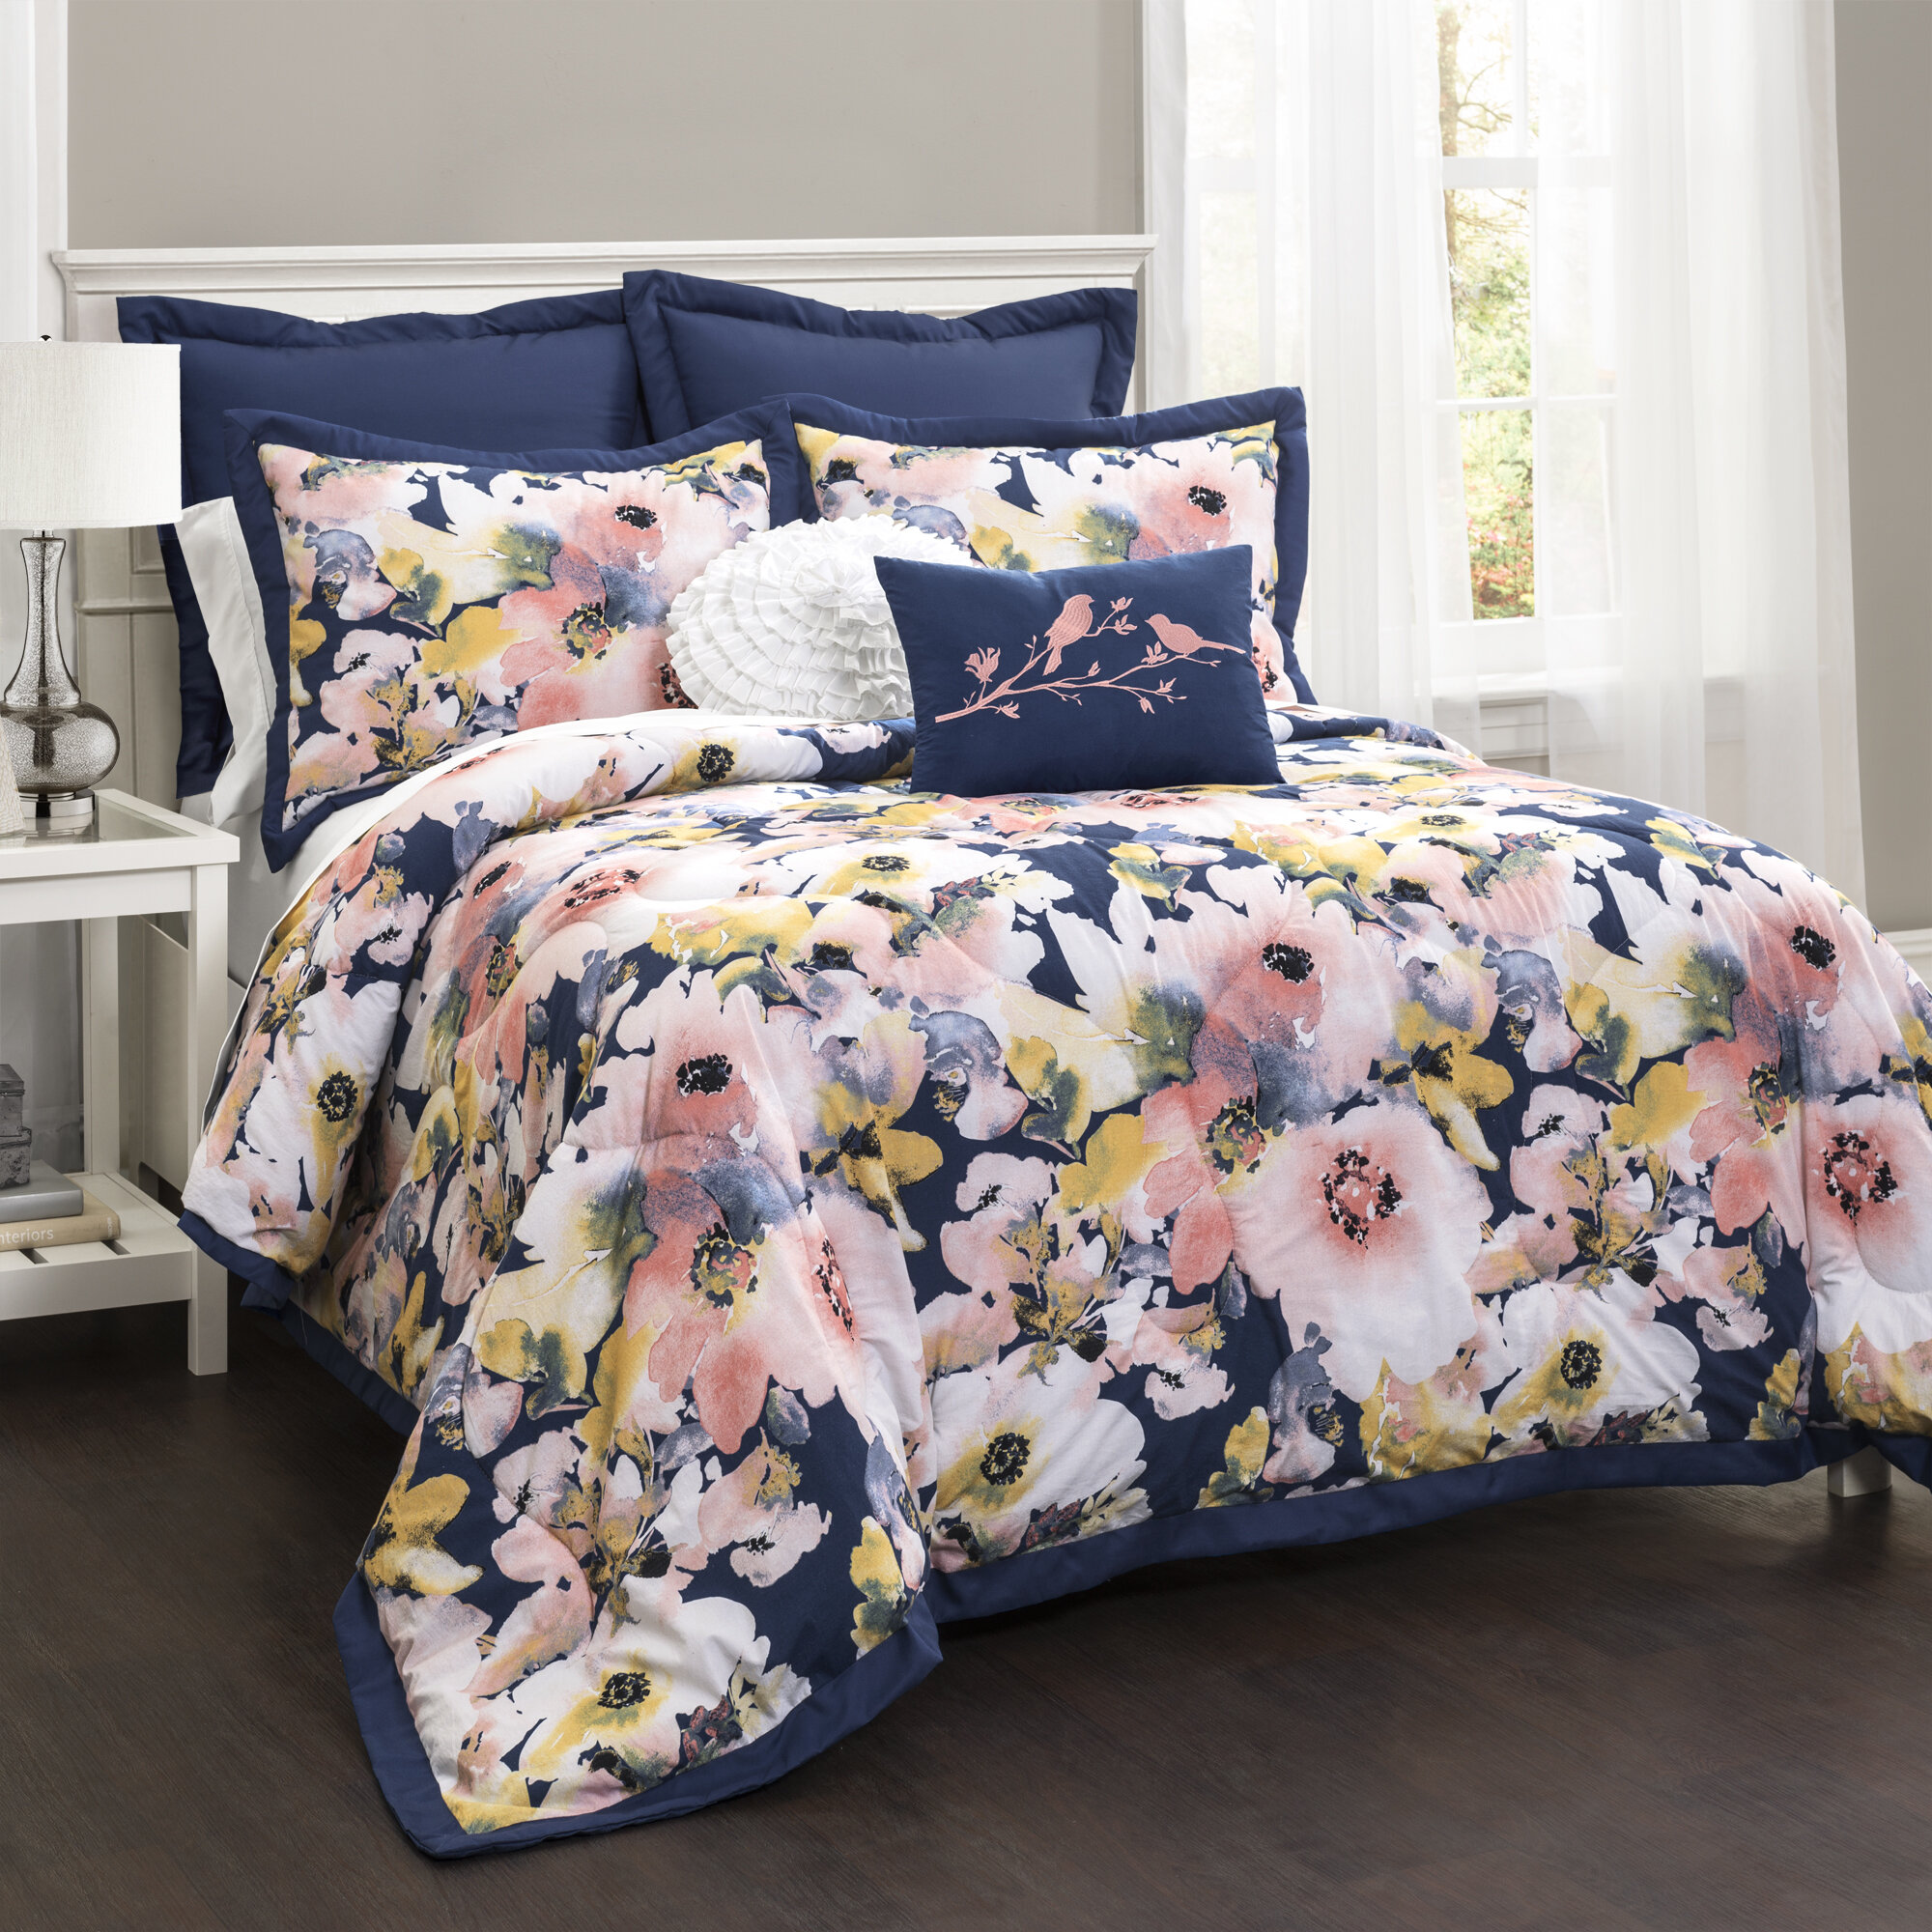 comforter by for max ideas mizrahi studio bed decoration miller bedding elephant salmon duvet cover sheets wonderful feathers isaac bedroom set white medallion blue nicole